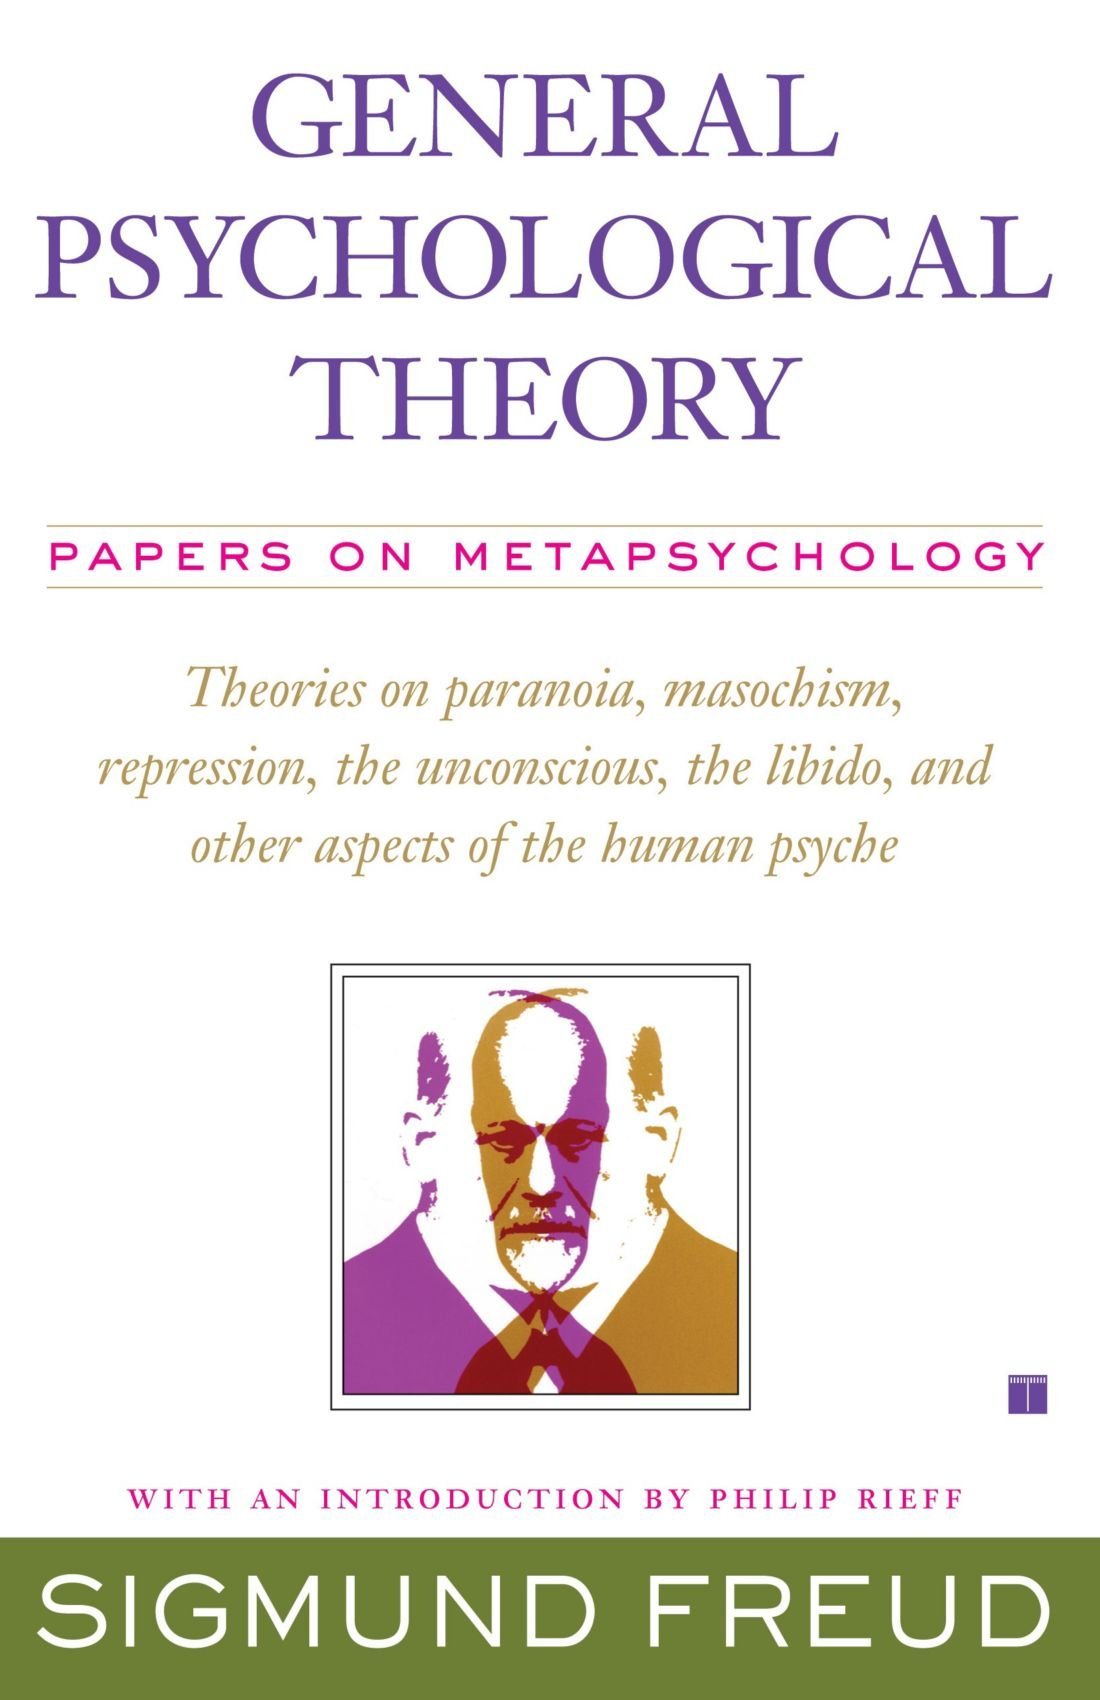 general psychological theory papers on metapsychology collected general psychological theory papers on metapsychology collected papers of sigmund freud sigmund freud 9781416573593 com books